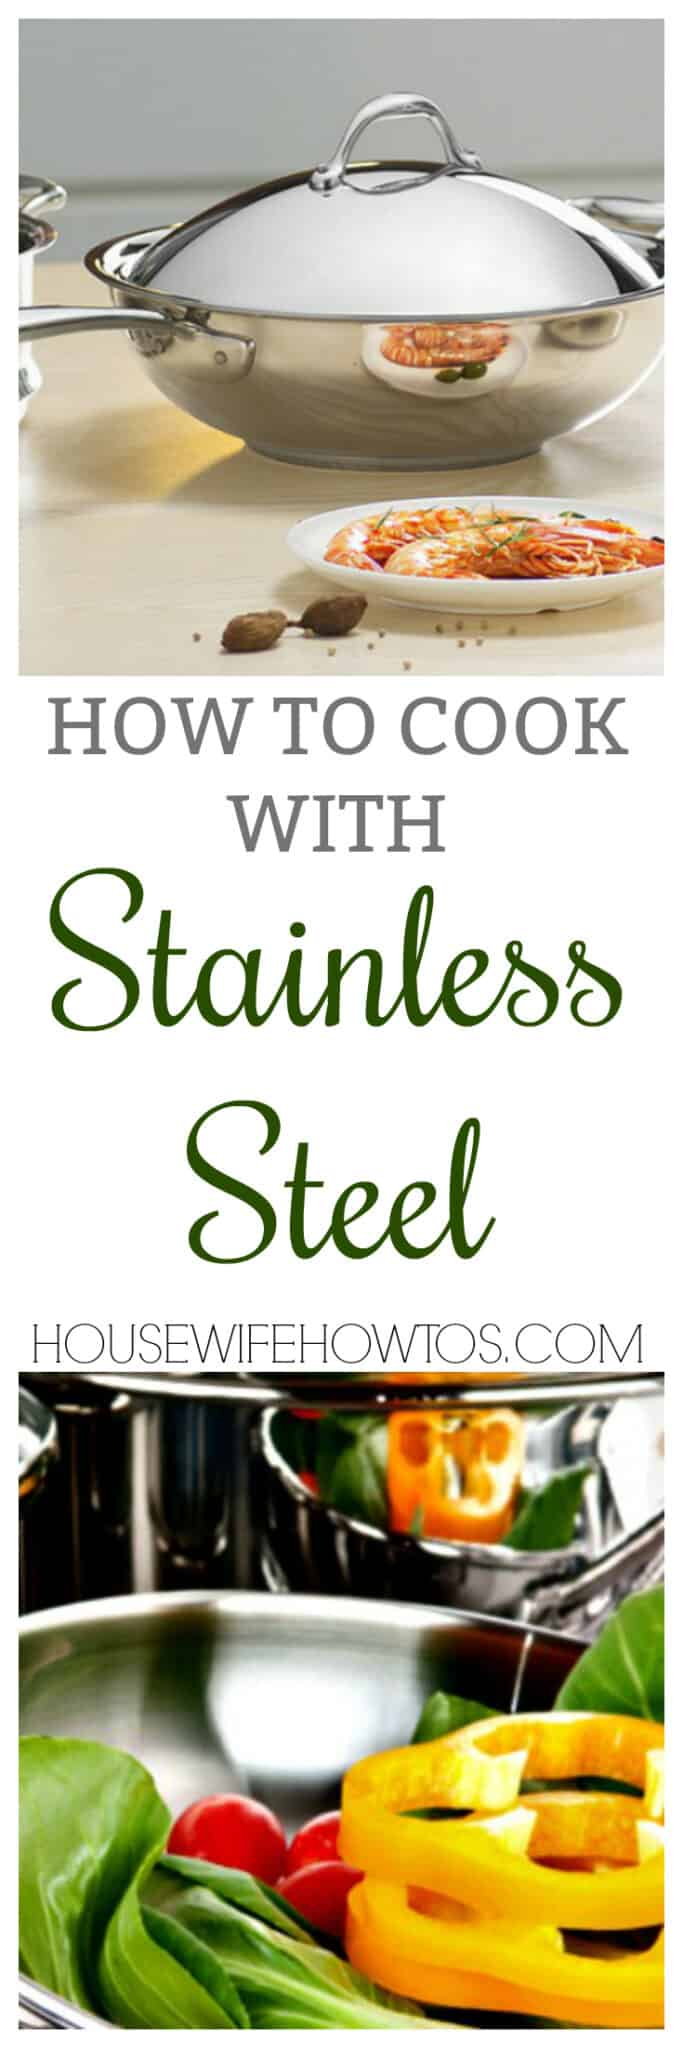 How to Cook with Stainless Steel Pots and Pans - Here are the secrets to getting the best results out of your set. #cooking #cookingtricks #cookingtips #stainlesssteel #potsandpans